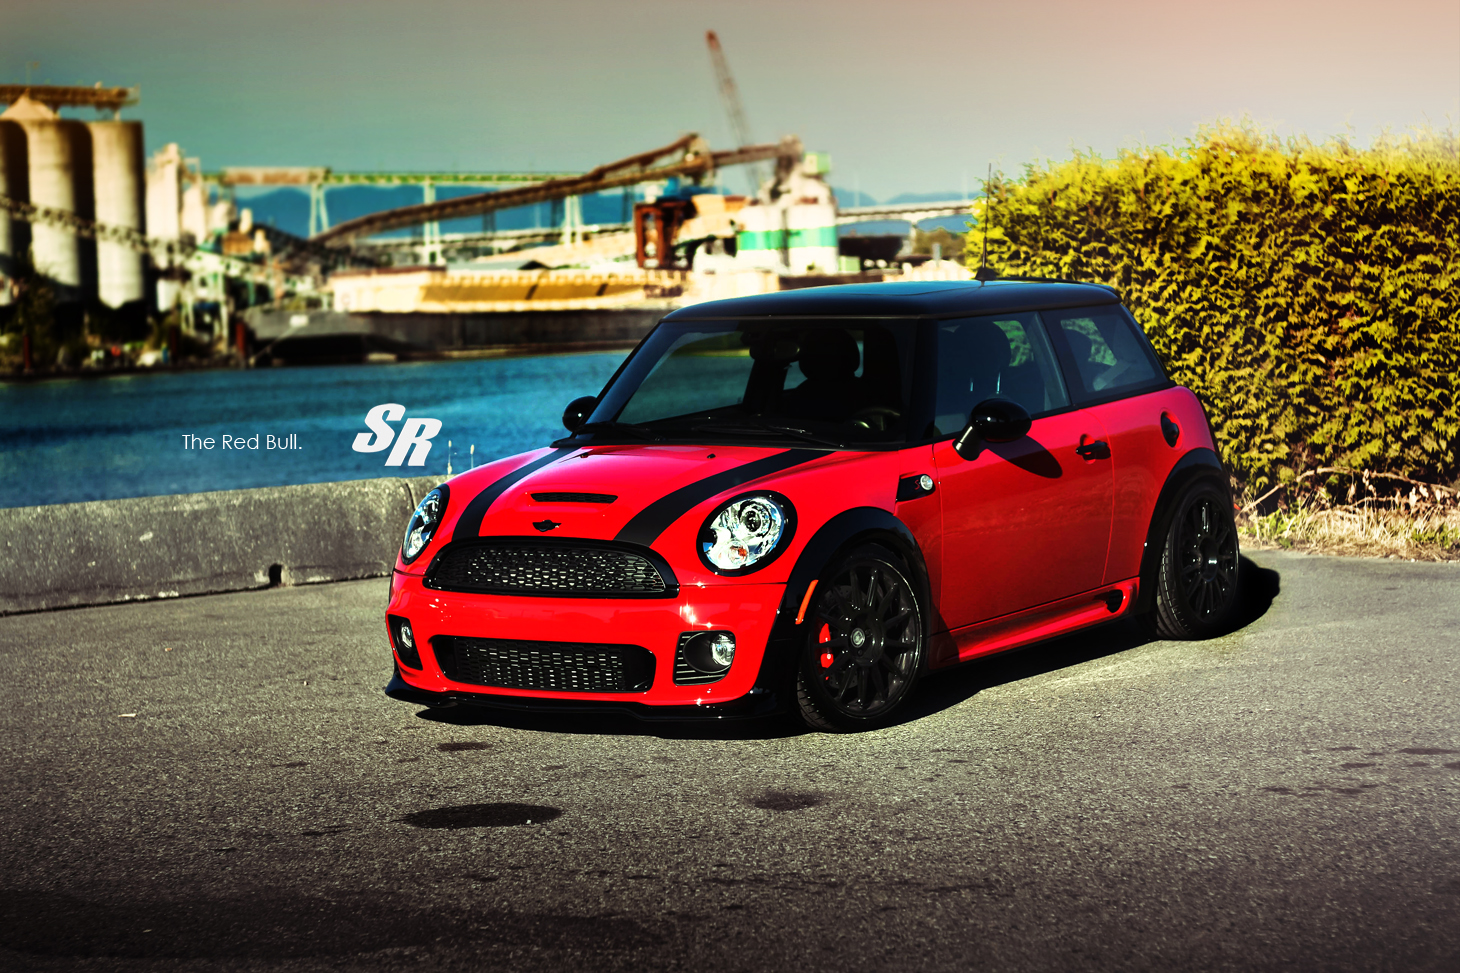 mini cooper s tuning 3 tuning. Black Bedroom Furniture Sets. Home Design Ideas